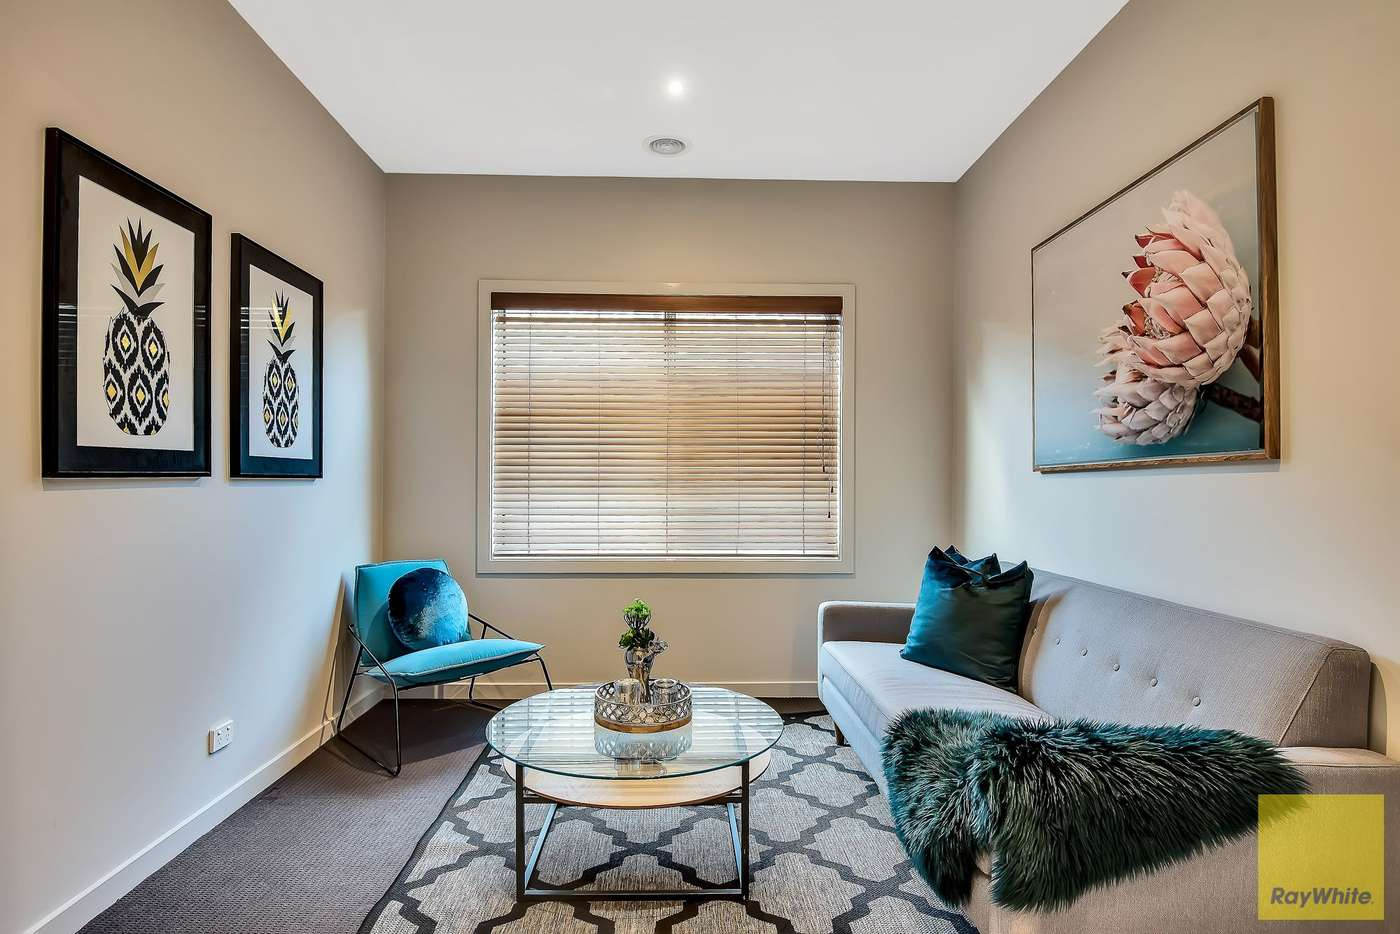 Fifth view of Homely house listing, 13 Alison Street, Truganina VIC 3029